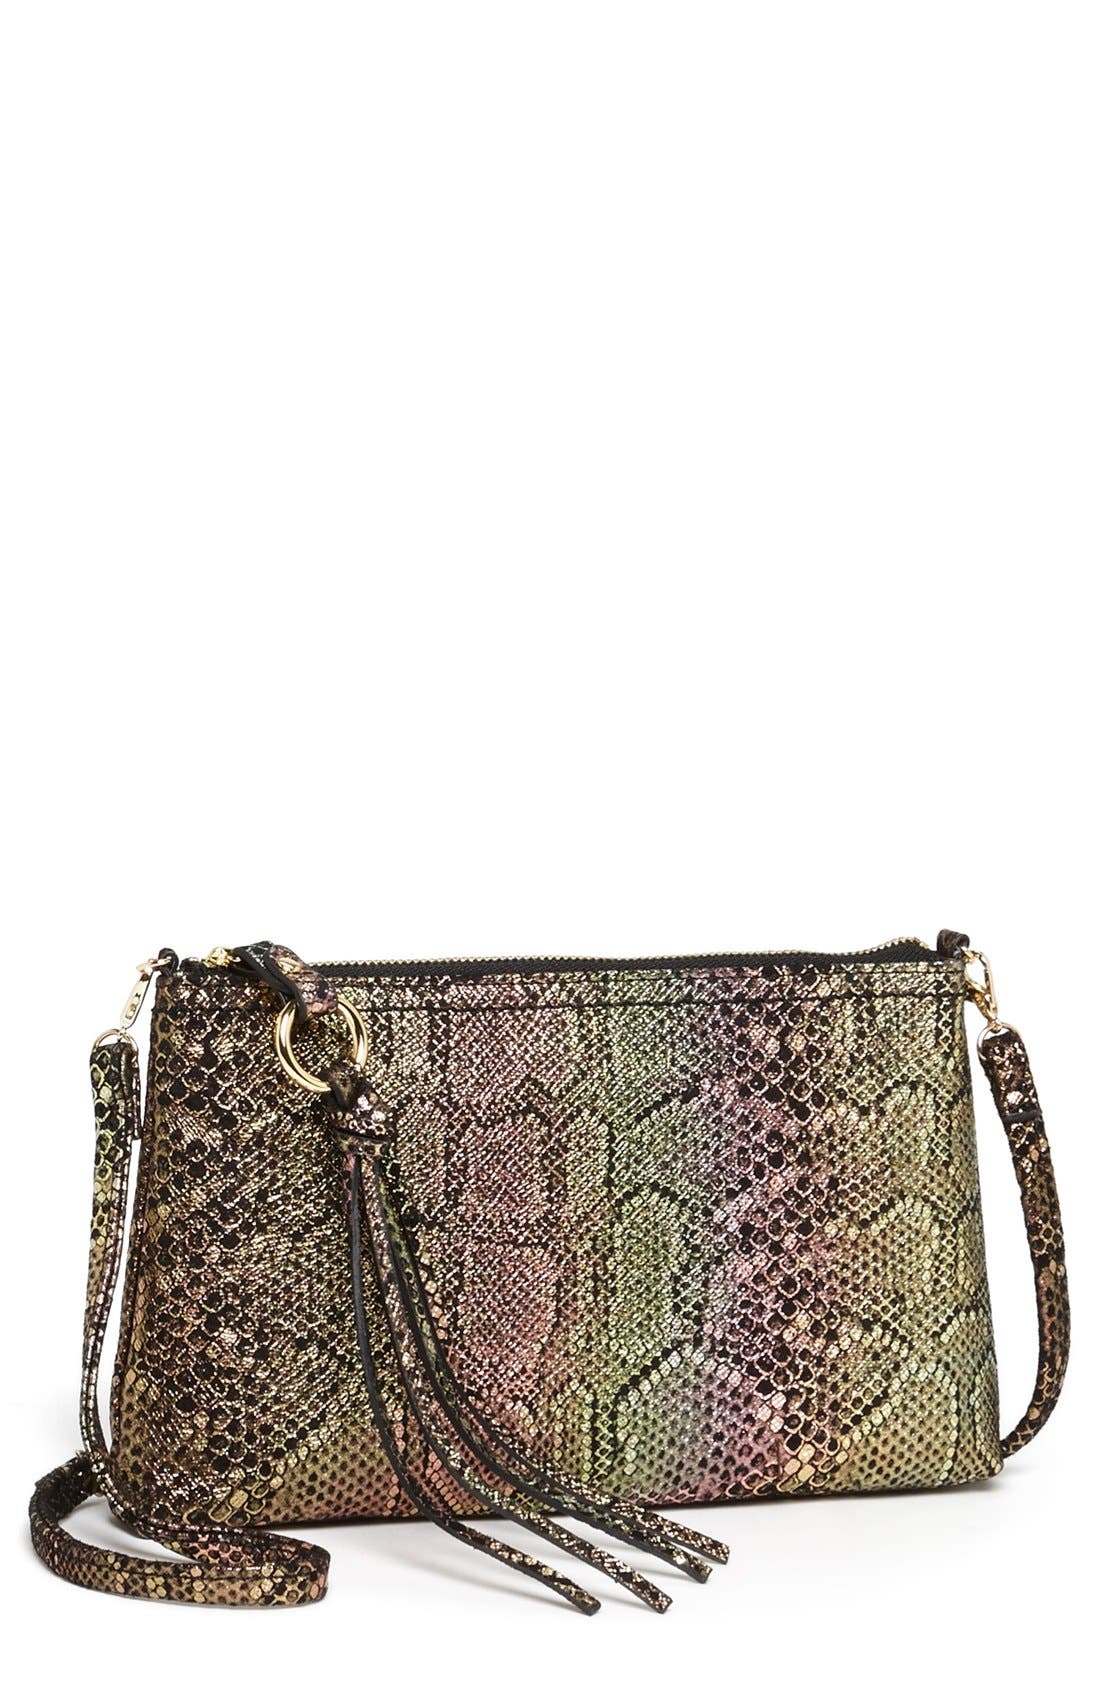 'Darcy' Leather Crossbody Bag,                             Main thumbnail 29, color,